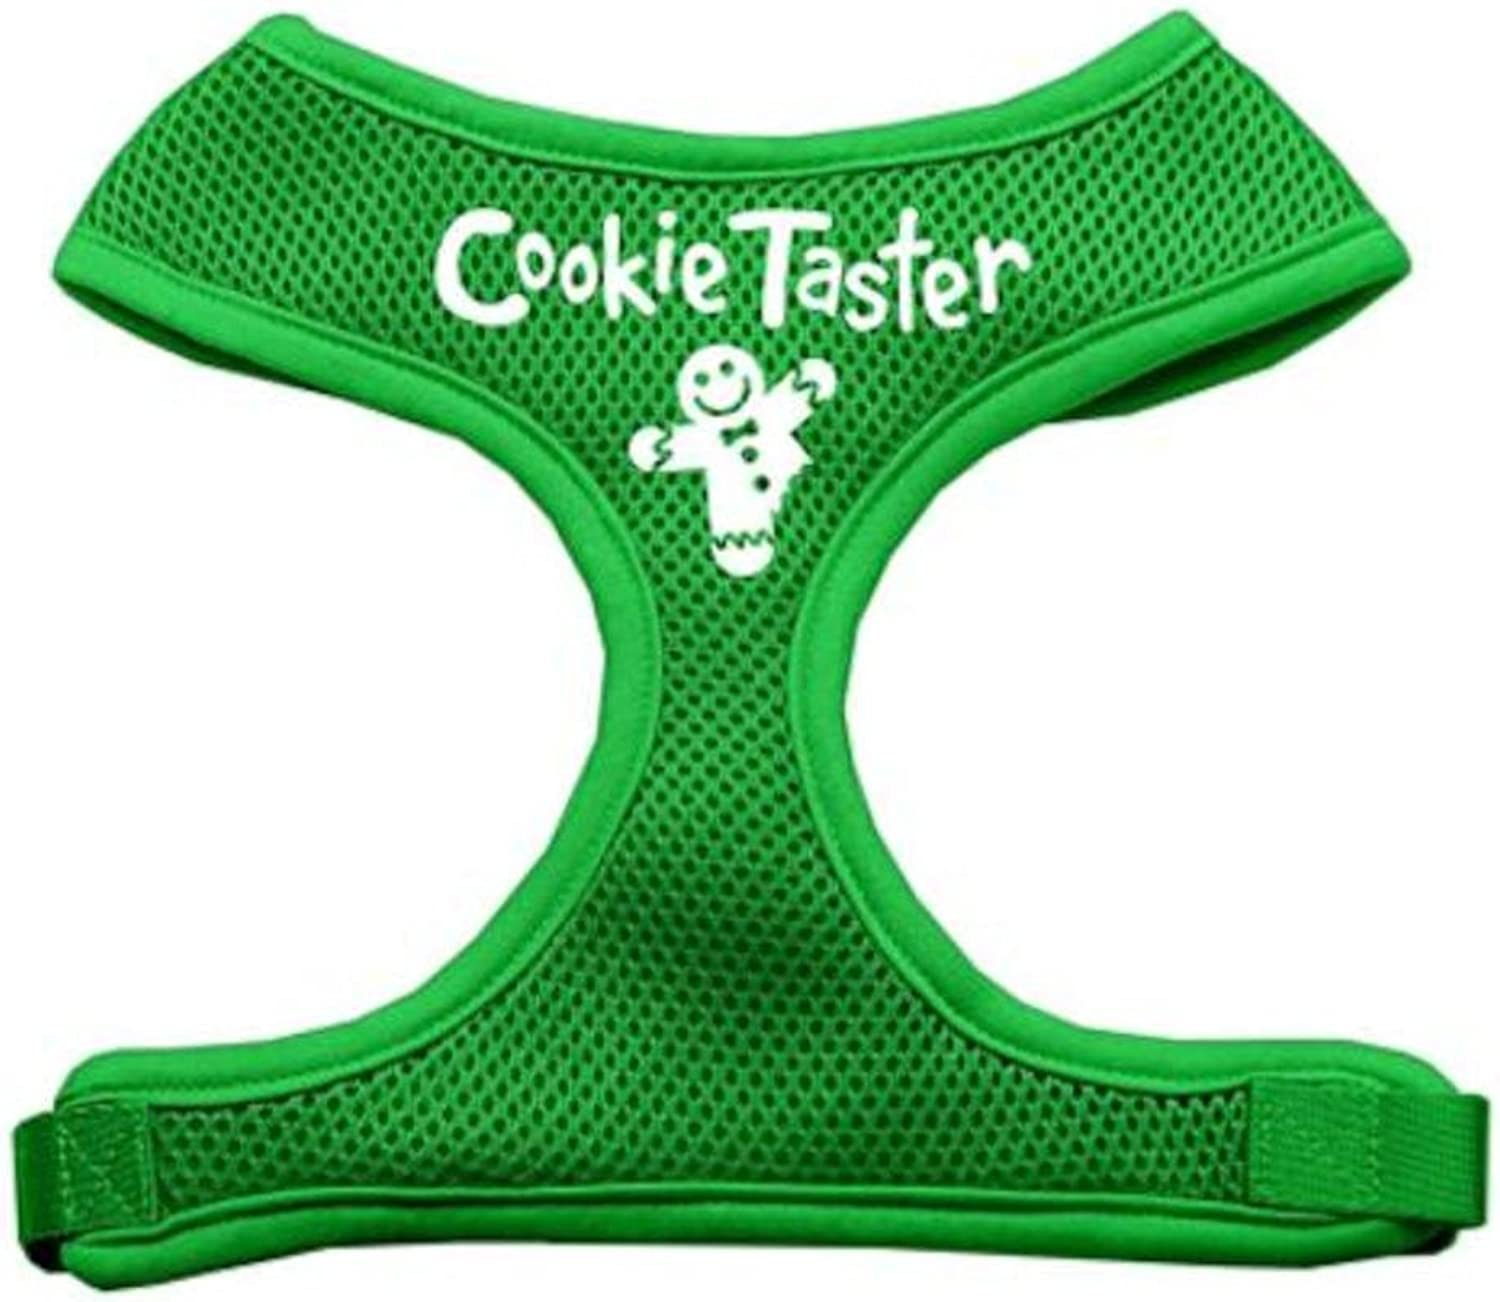 Mirage Pet Products Cookie Taster Screen Print Soft Mesh Dog Harnesses, Medium, Emerald Green